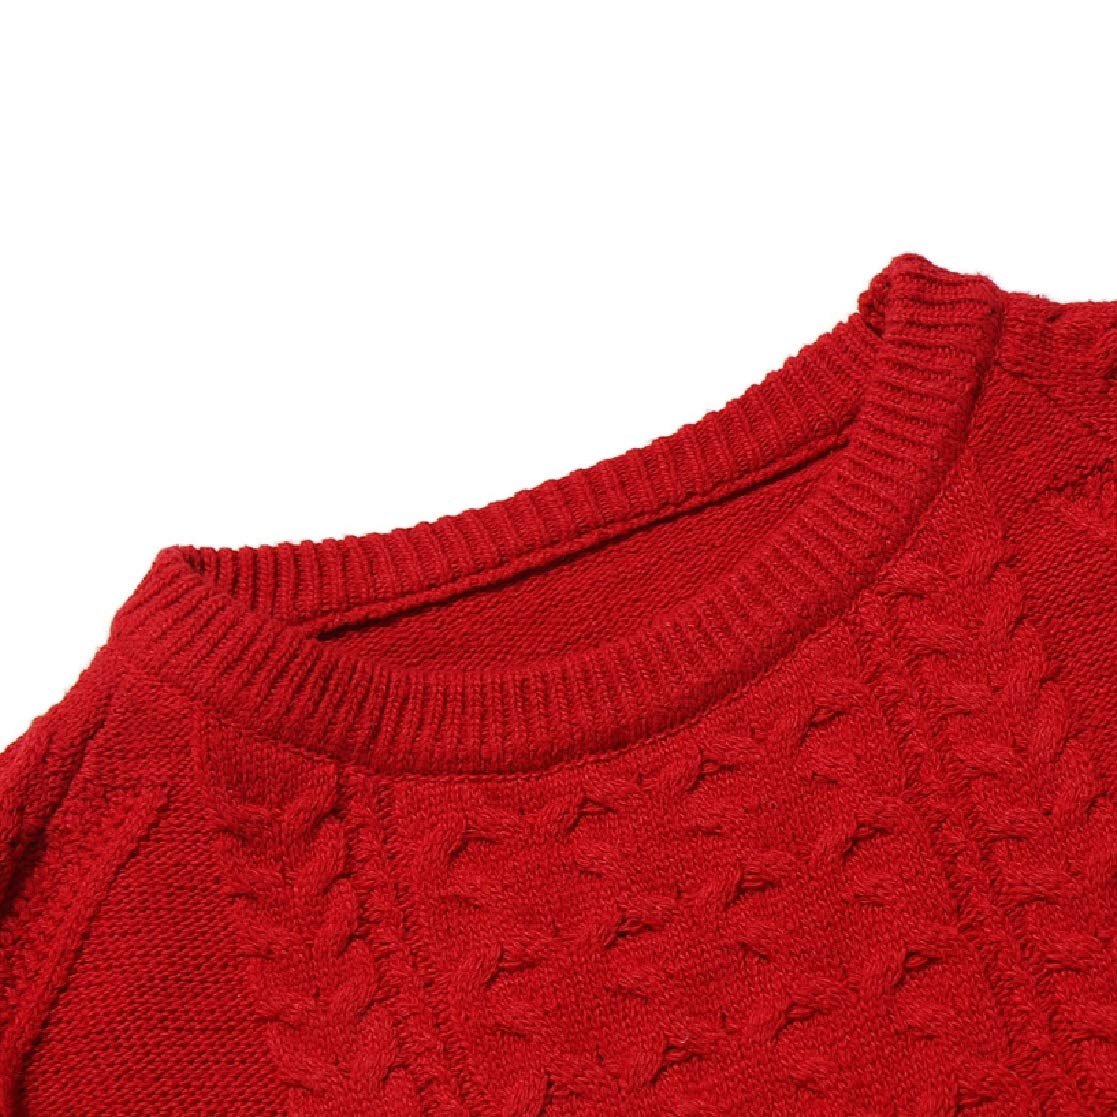 YUNY Men Marled Cable O-Neck Thermal Knitwear Pure Long Sleeve Pullover Sweaters Red L